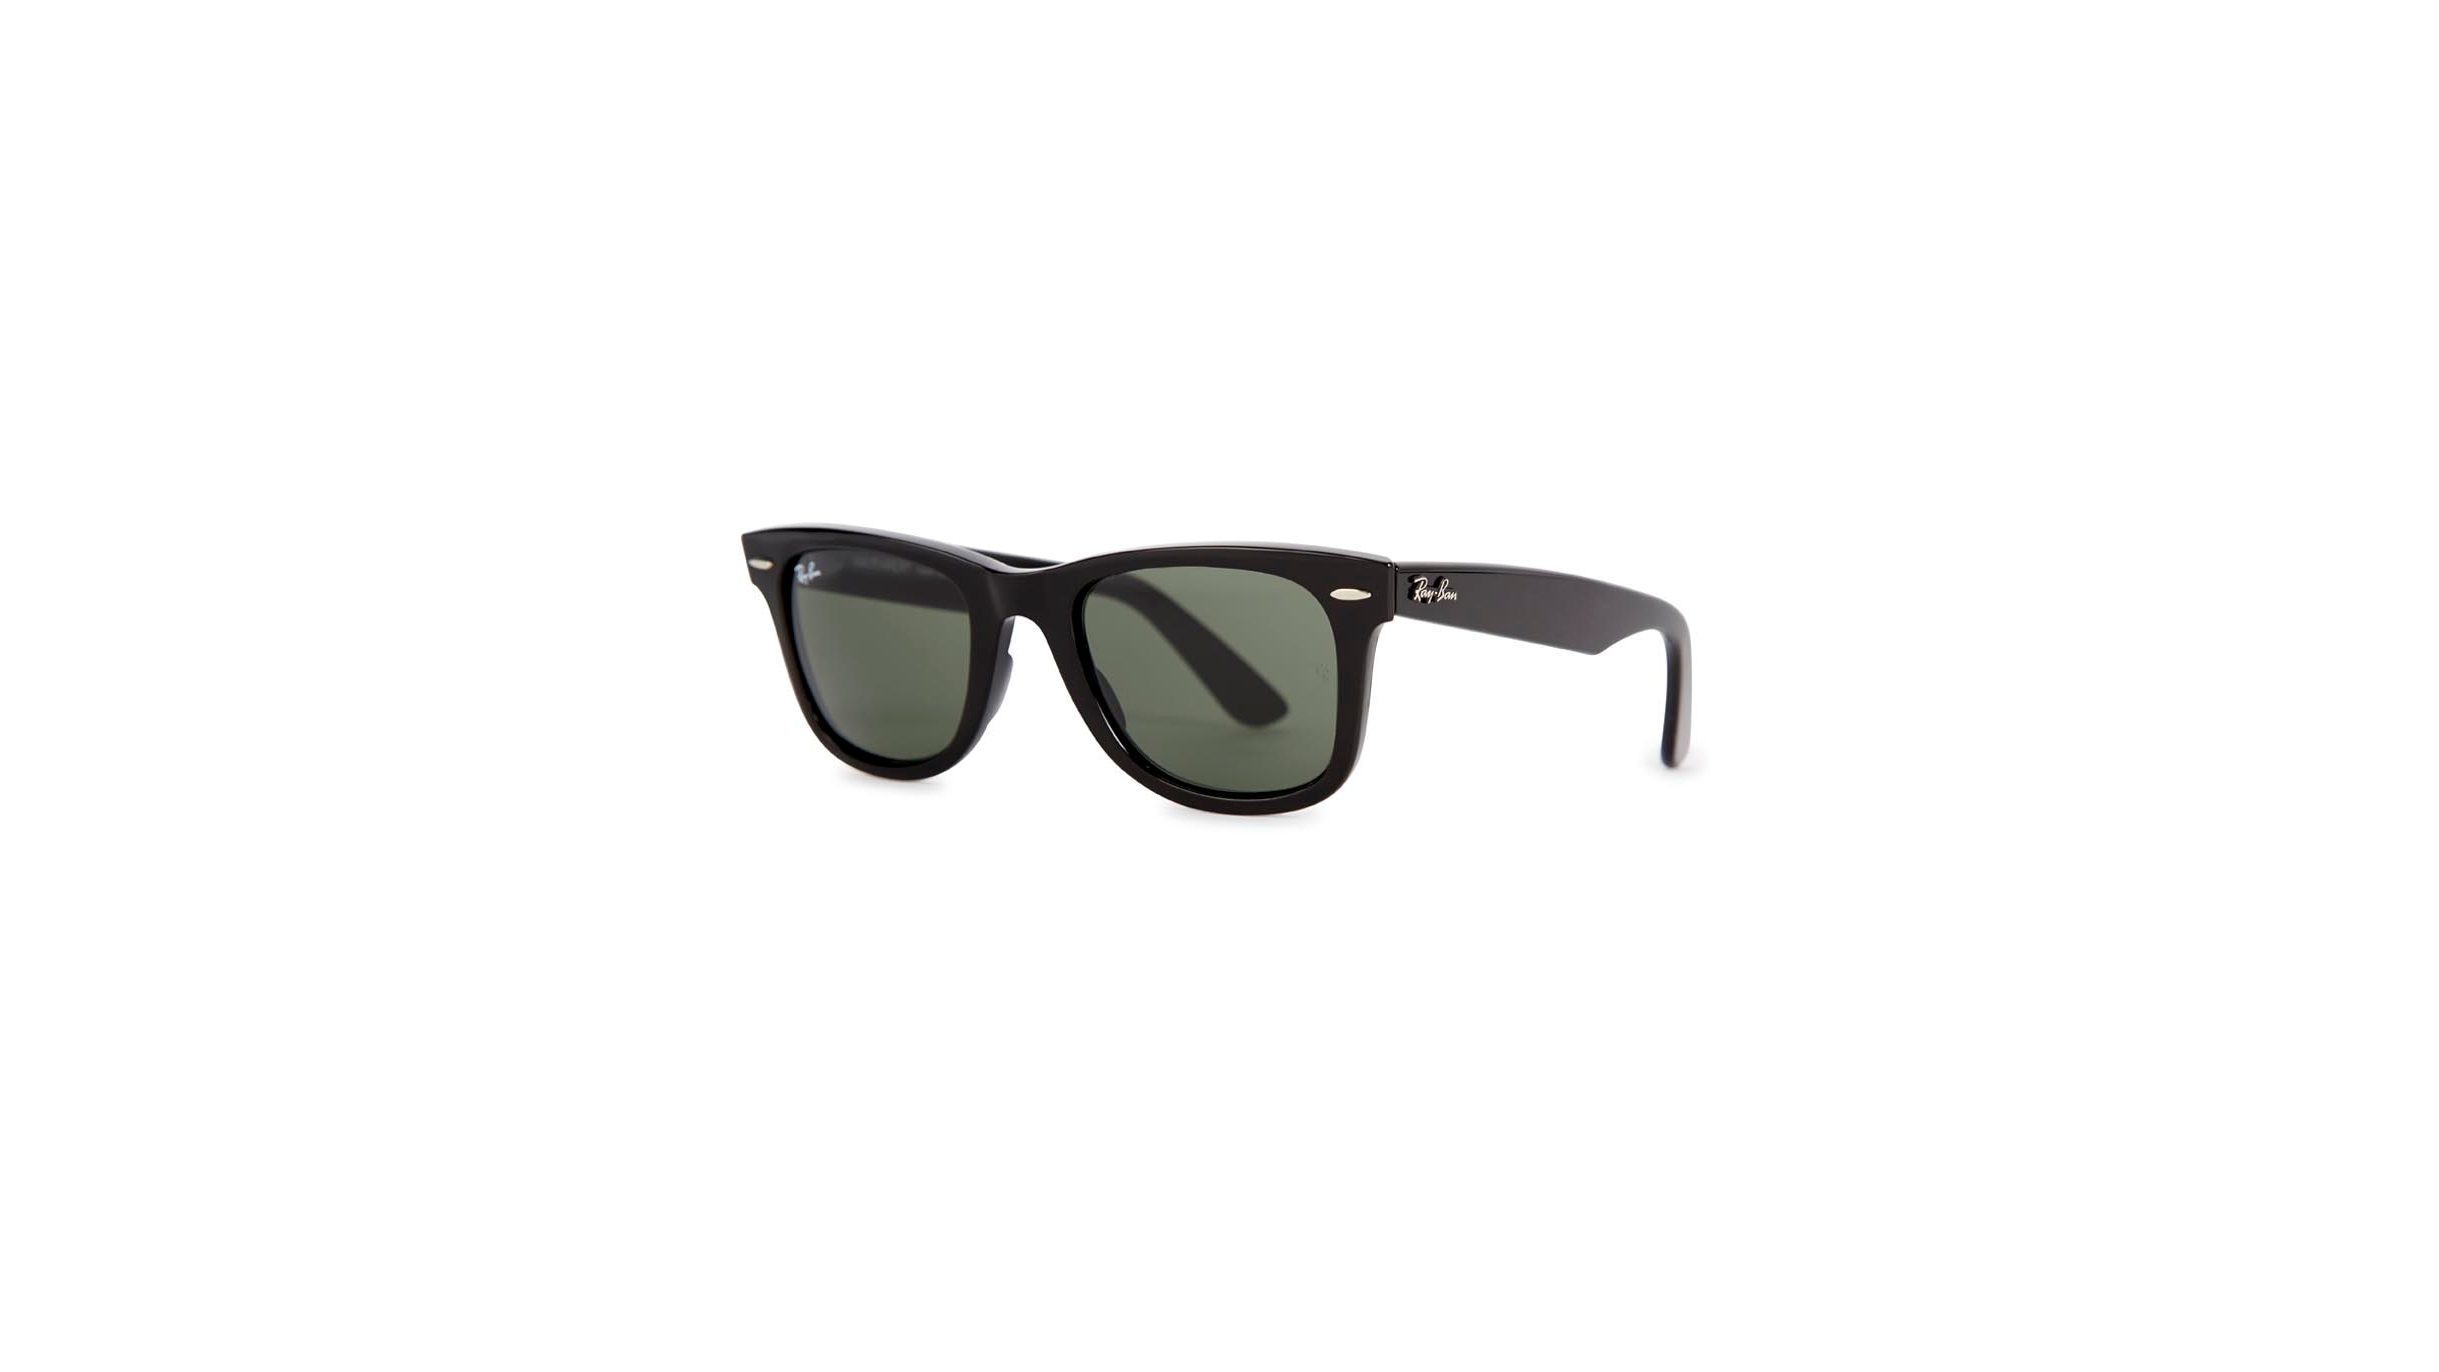 4071cfc6e7 Ray-Ban Wayfarer black sunglasses - Harvey Nichols